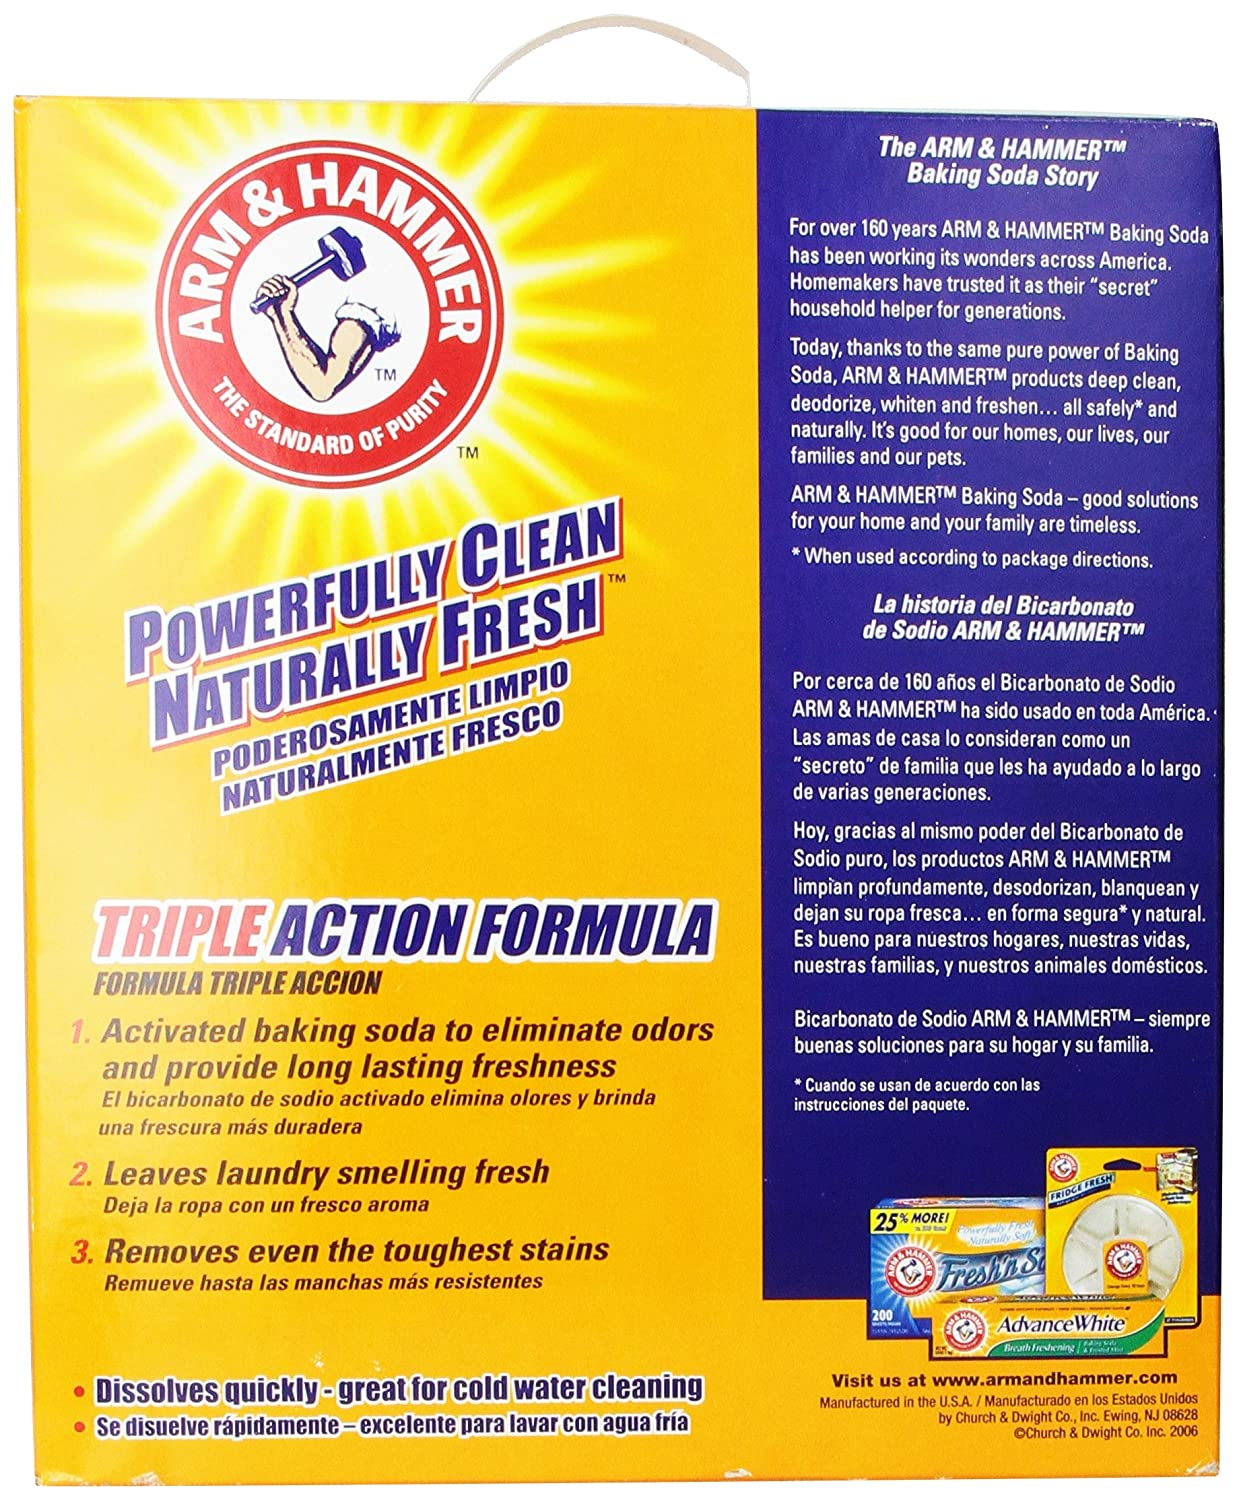 Amazon.com: Arm & Hammer Laundry Detergent, Cool Breeze, 14.22 Lbs: Health & Personal Care